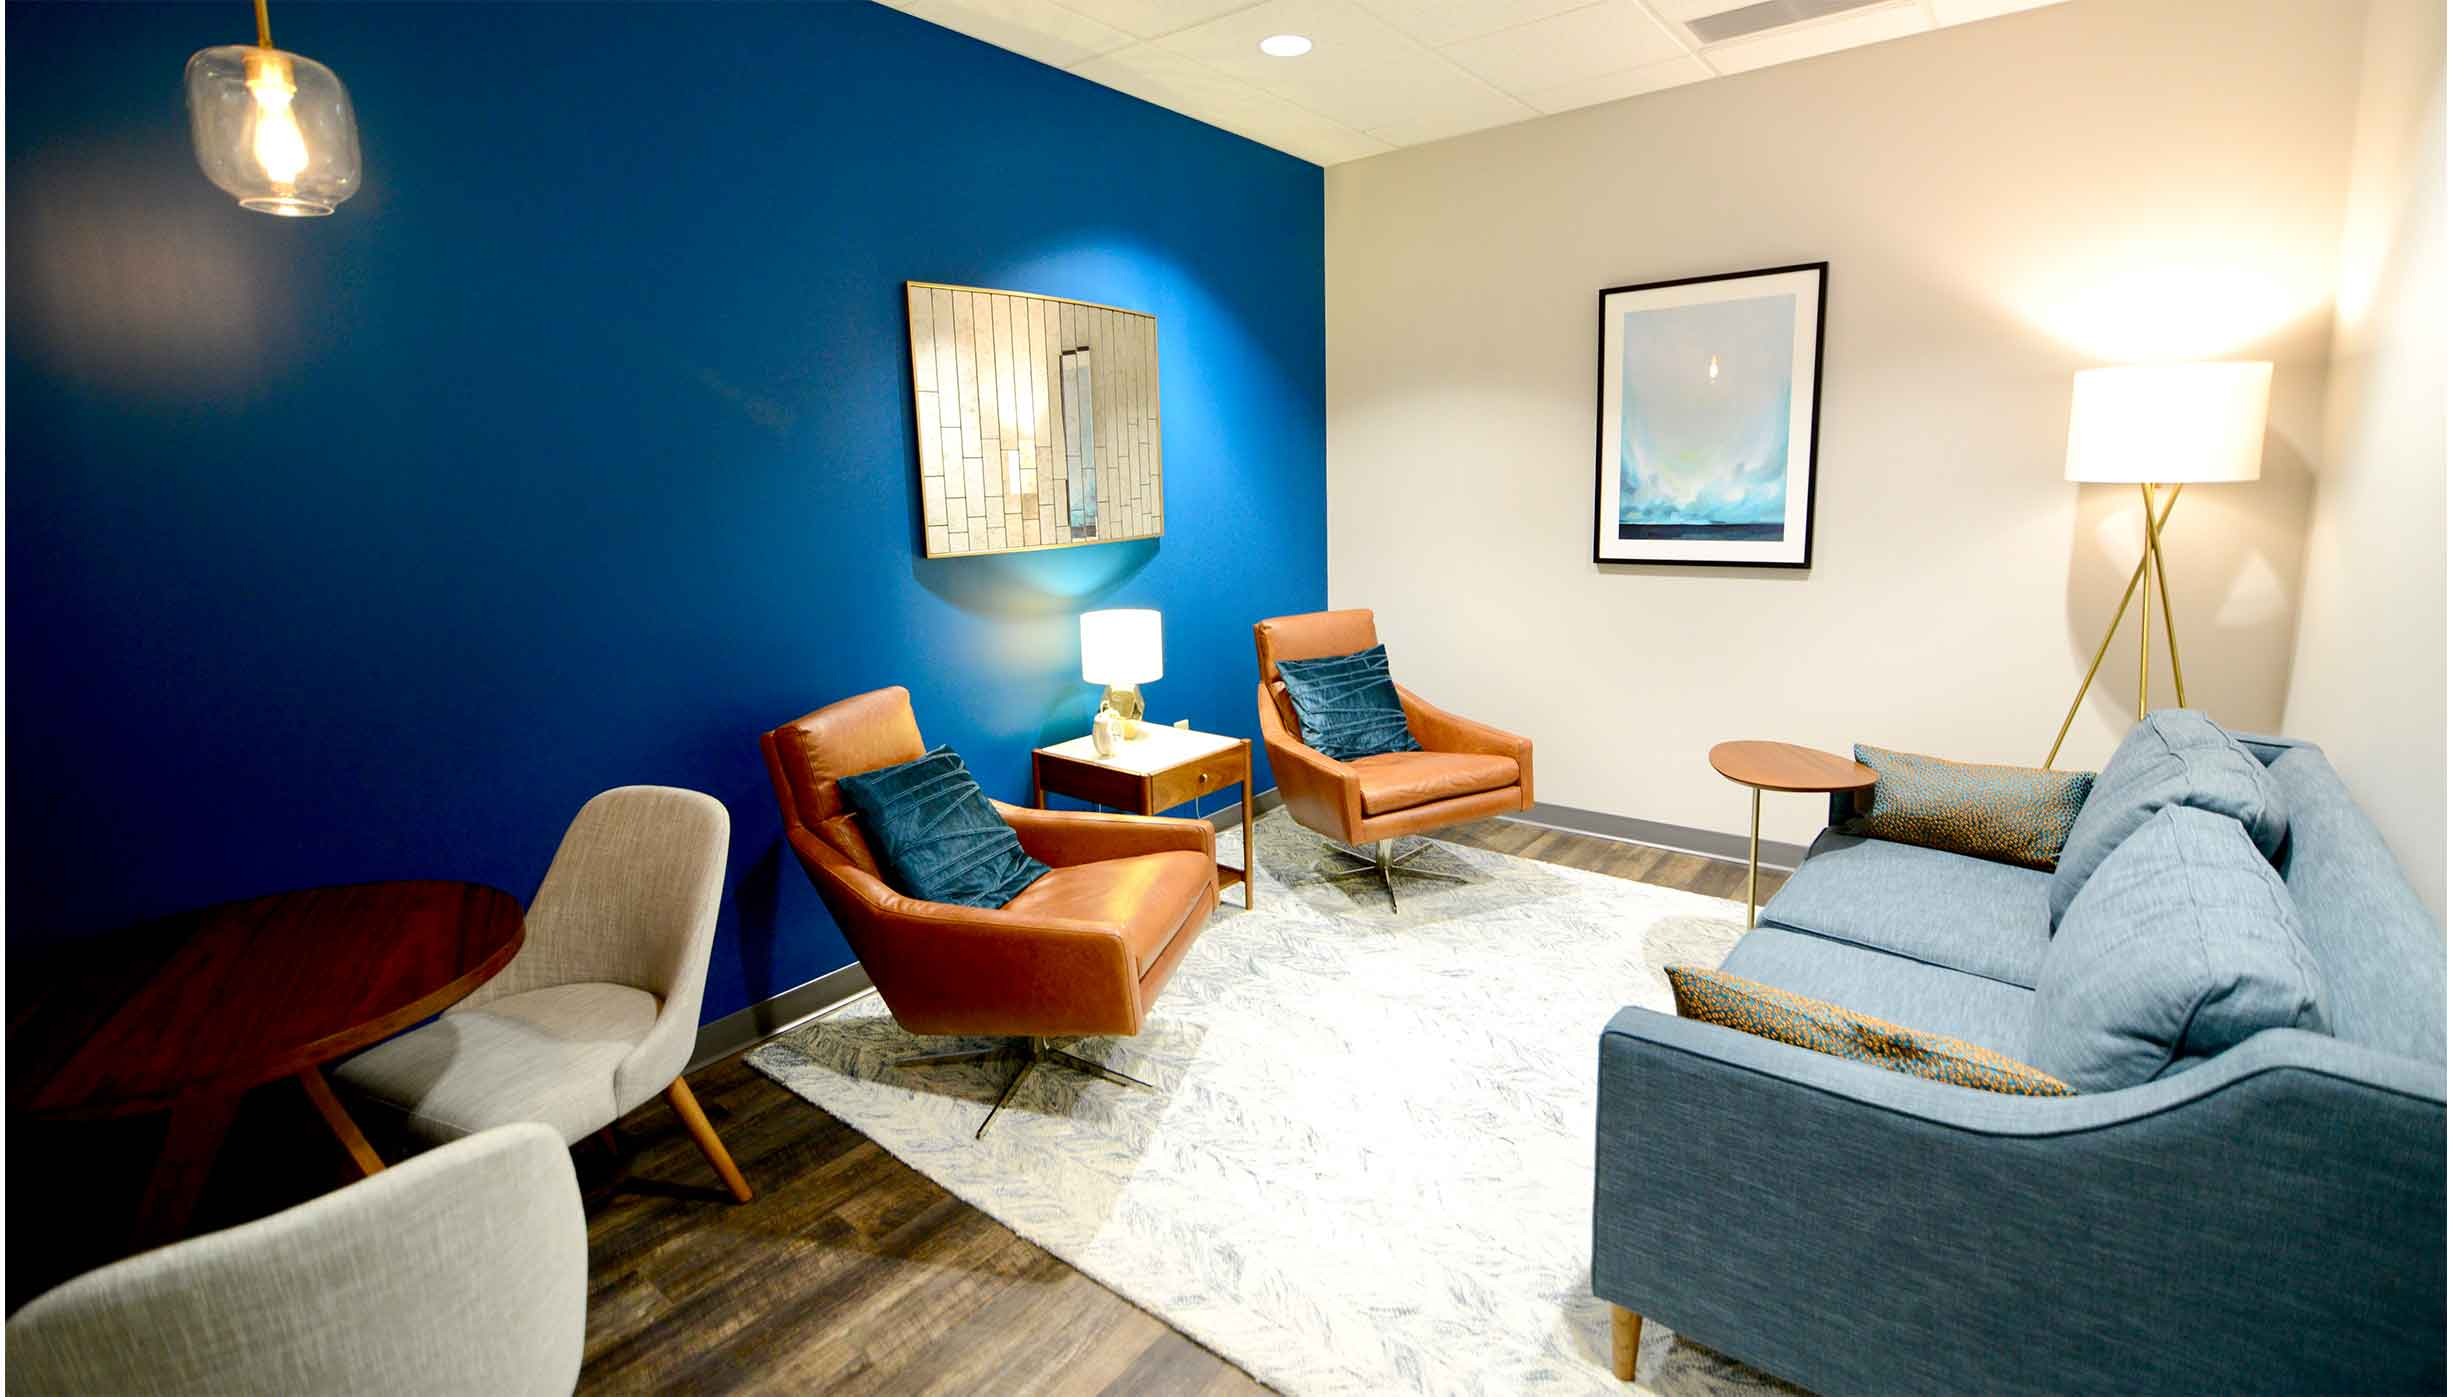 Family therapy room with a welcoming blue wall, a couch, chairs and tables, and modern art for a relaxed family counseling experience in Liberty Center. ThrivePointe Counseling helps adults and children through family therapy in Liberty Township, OH 45069